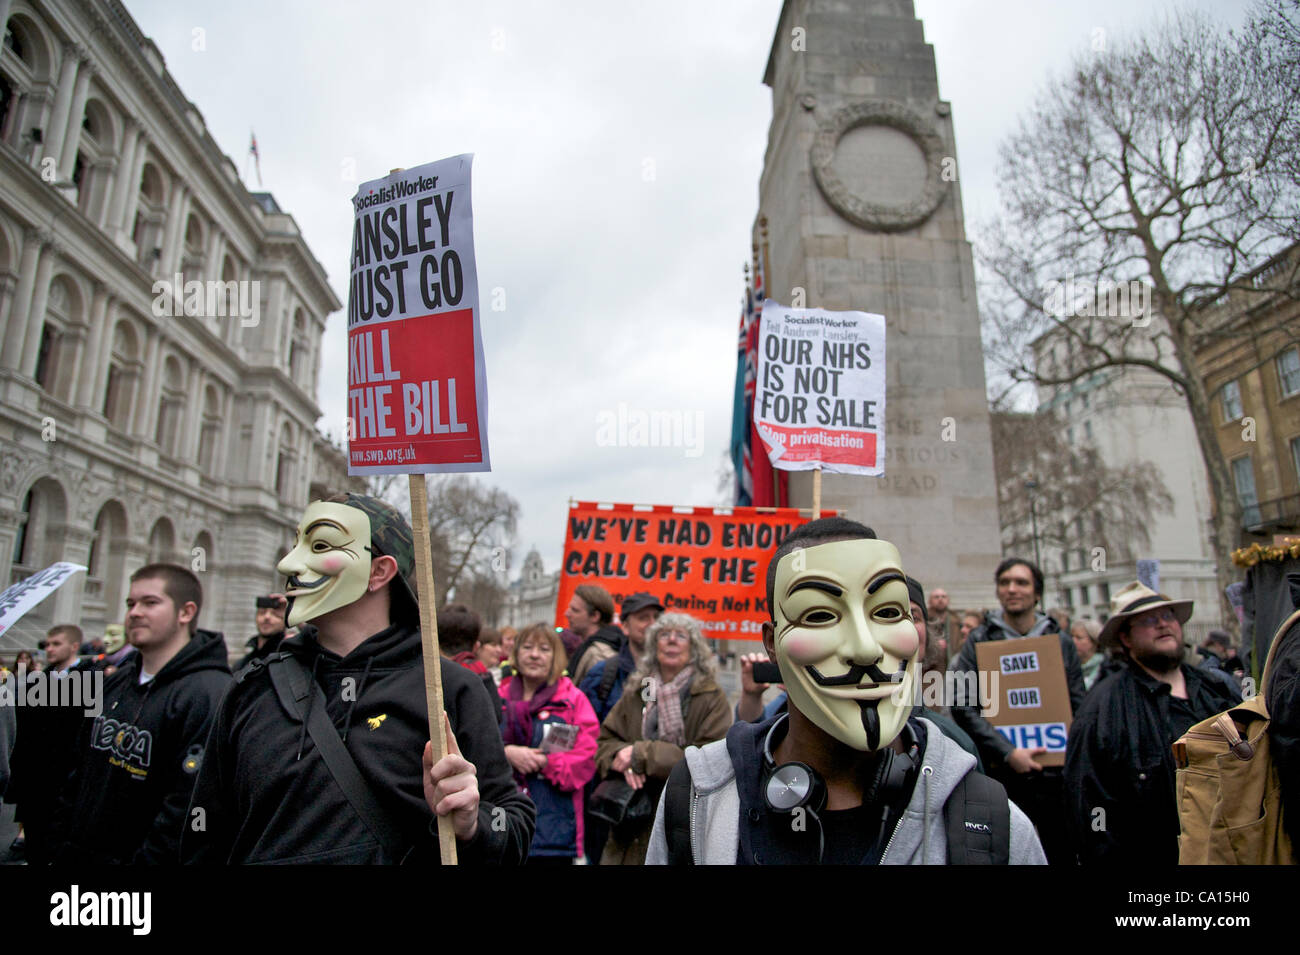 London, UK. 17/03/2012. UKUncut Protesters call on the government to scrap its reforms of the NHS. The government - Stock Image